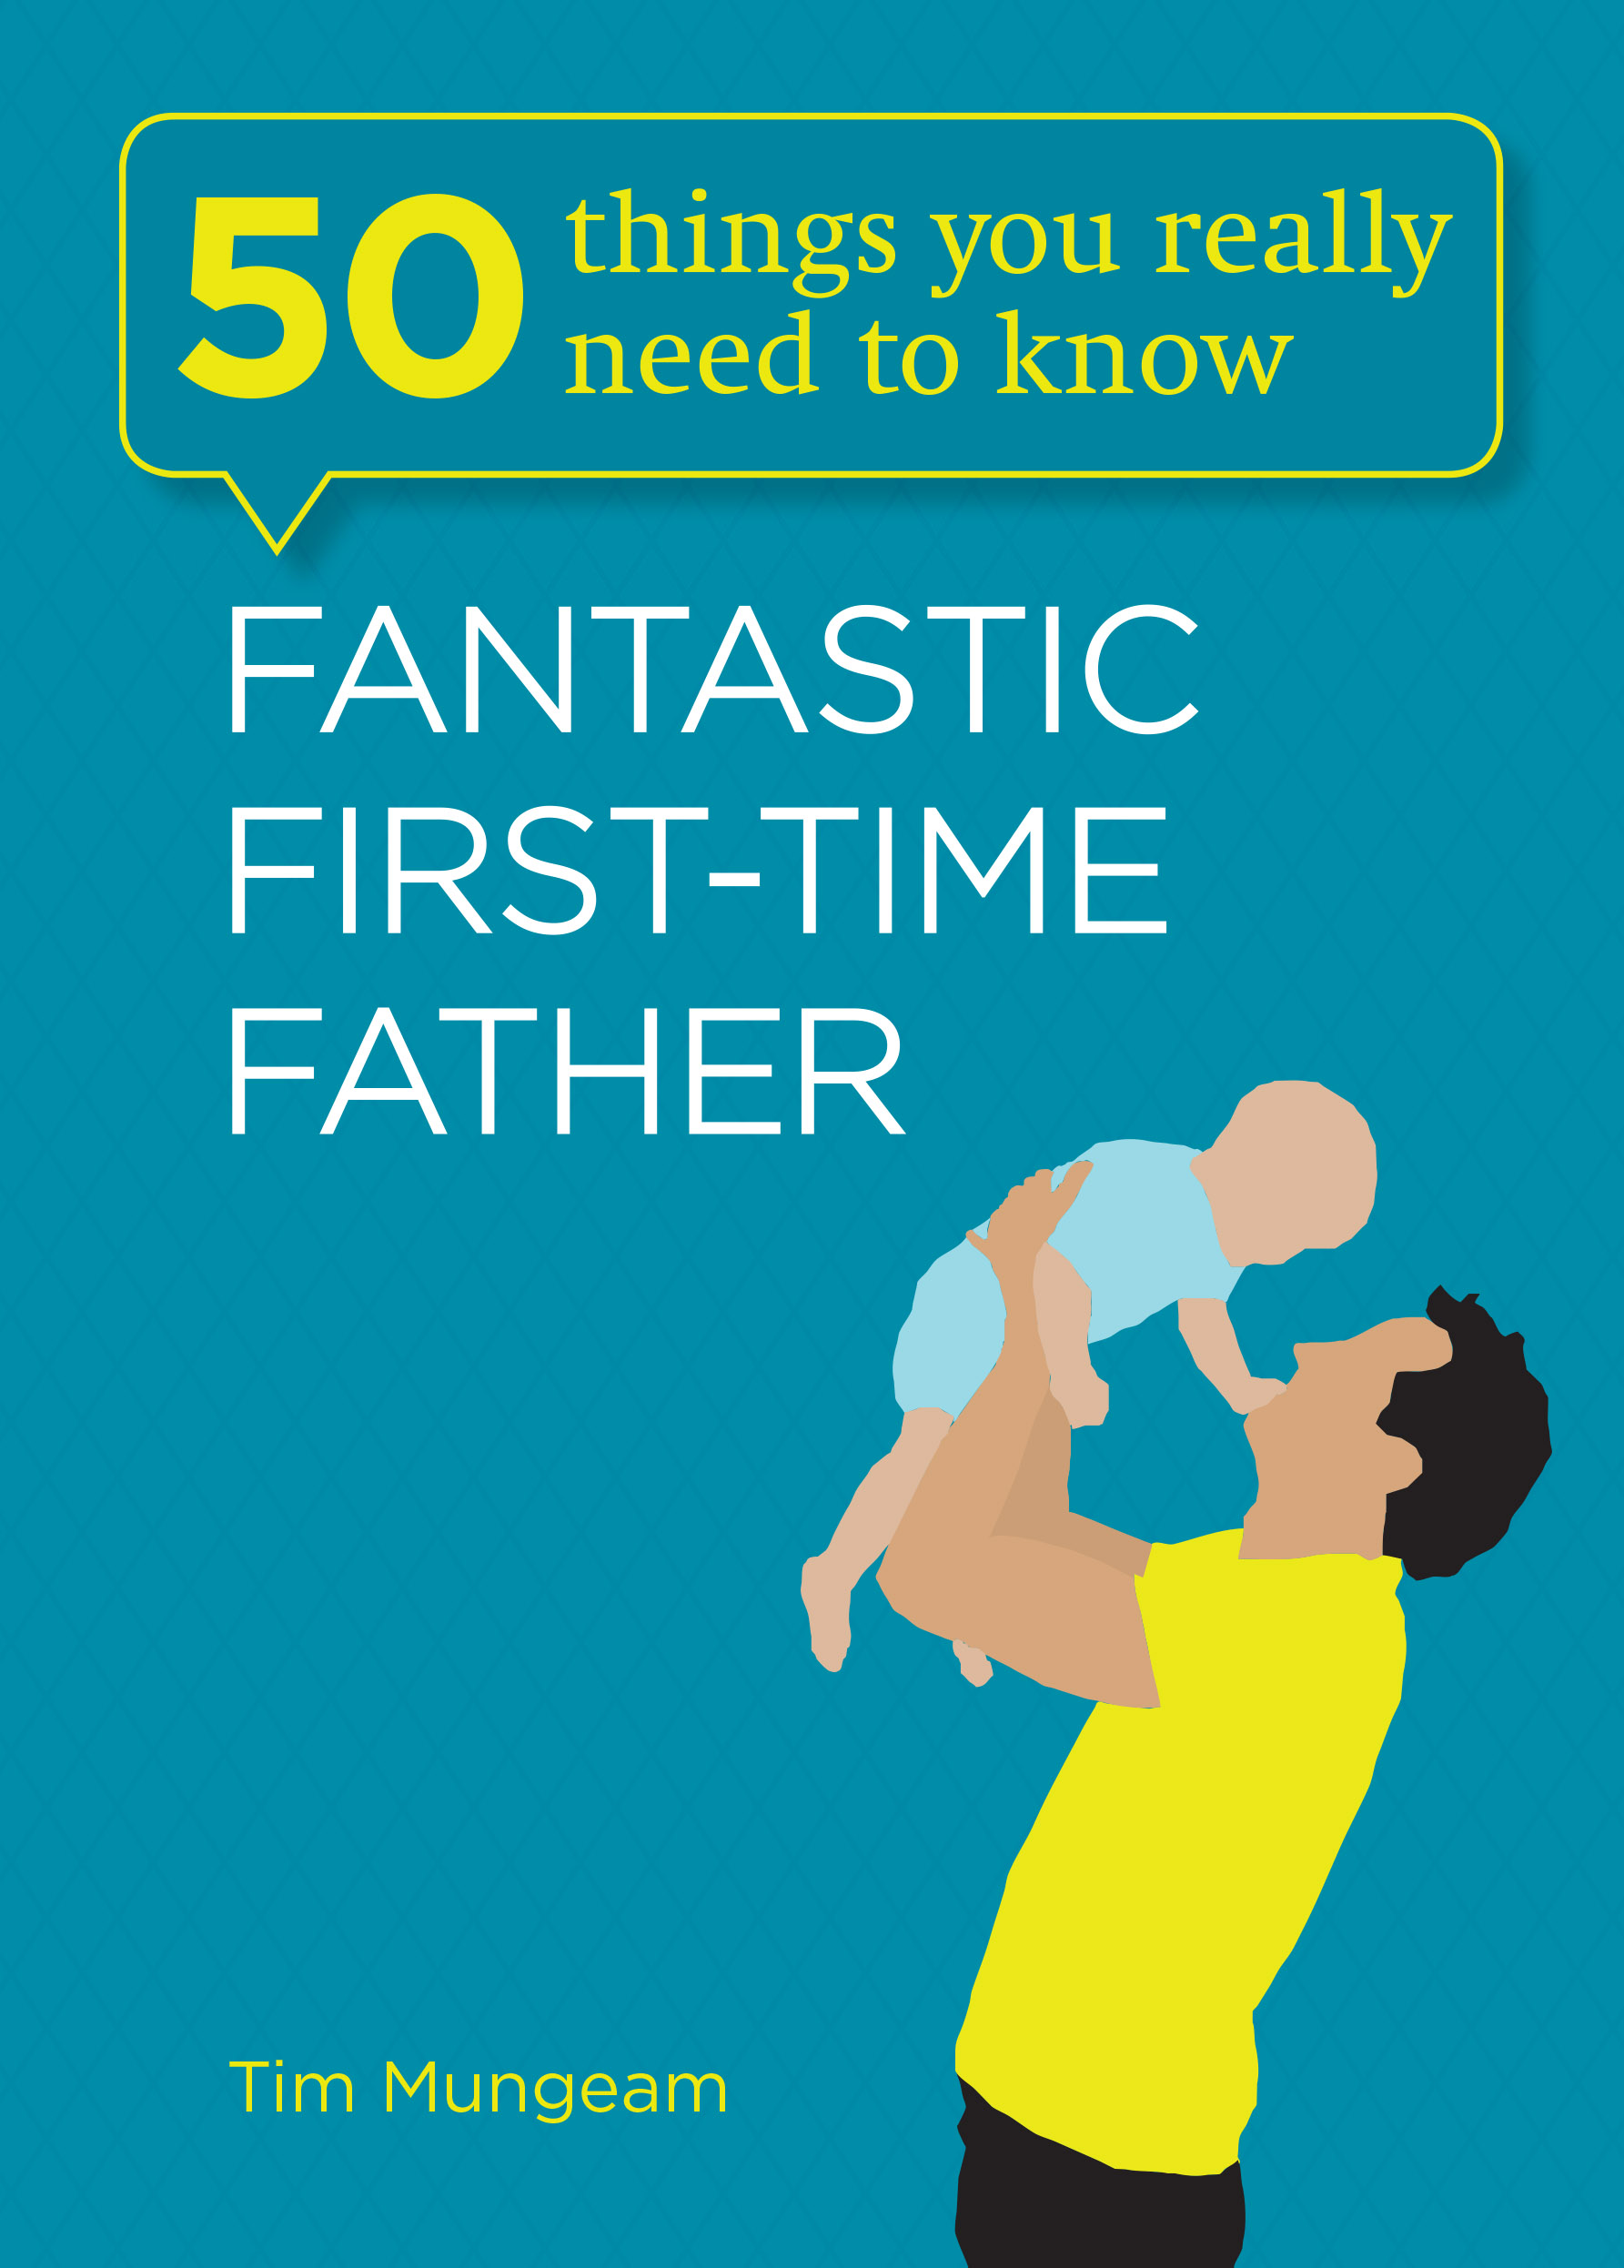 Fantastic Firts-time Father by Tim Mungeam